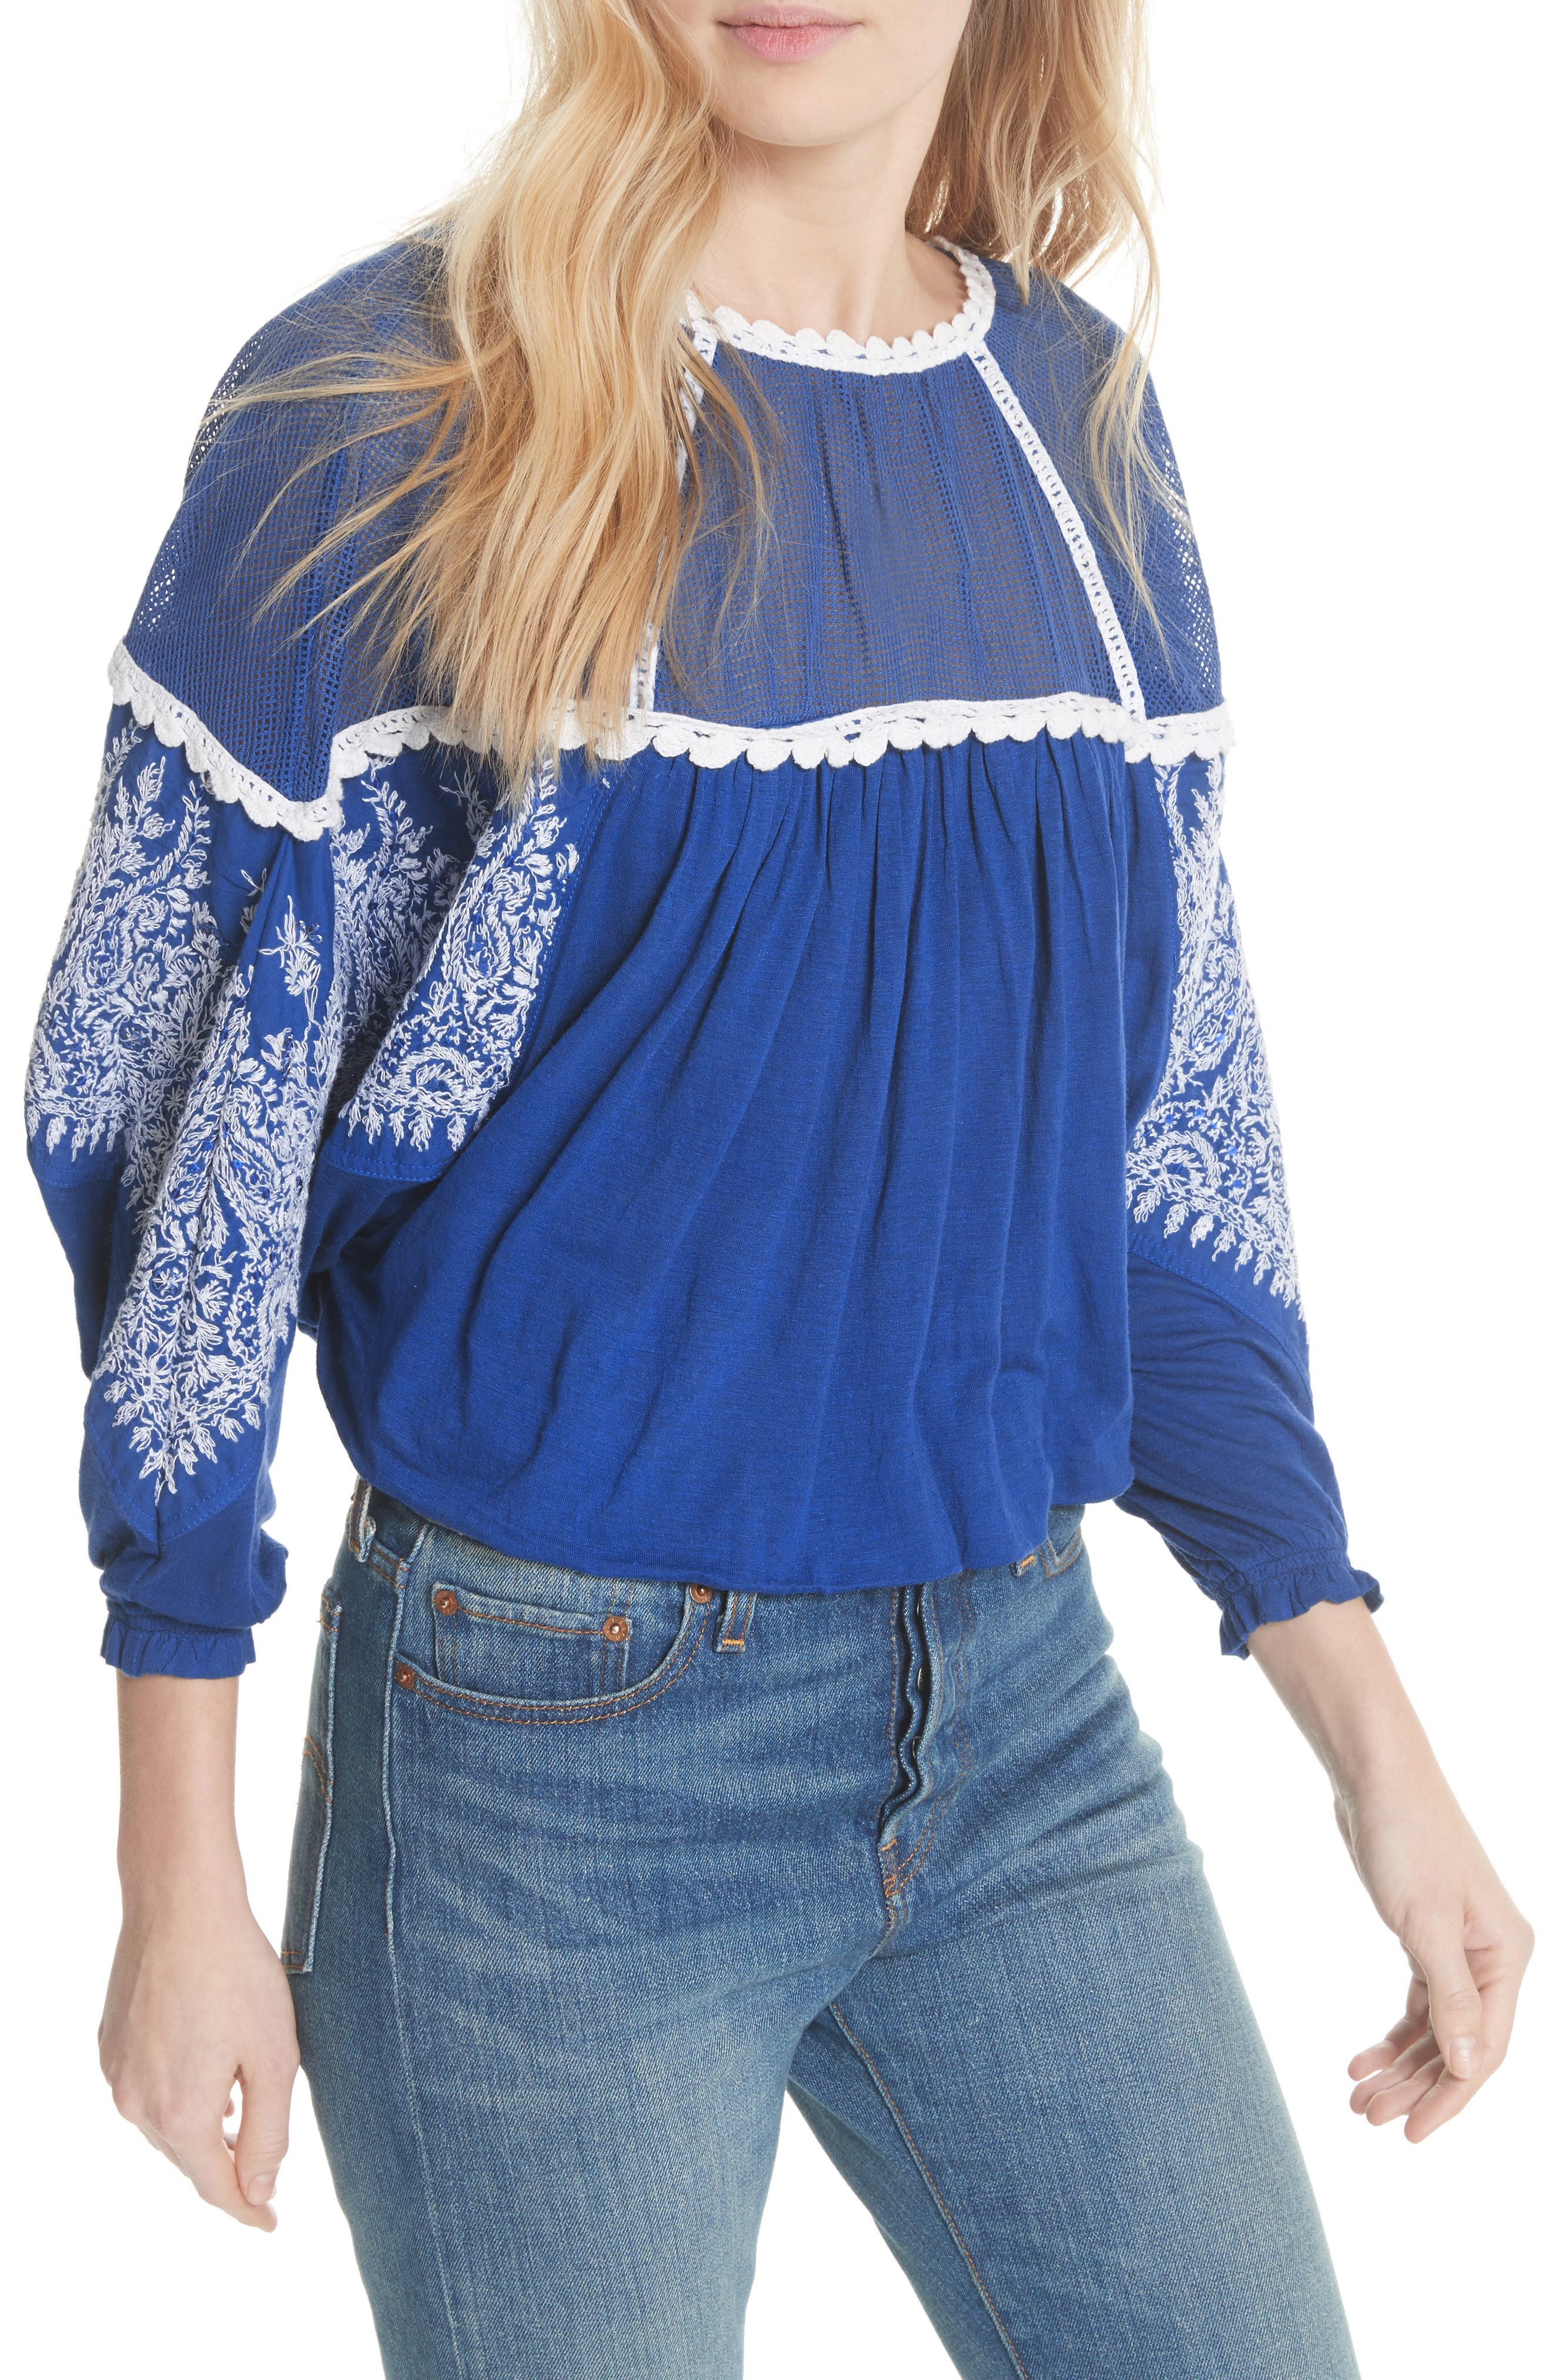 Free People Carly Embroidered Blouse